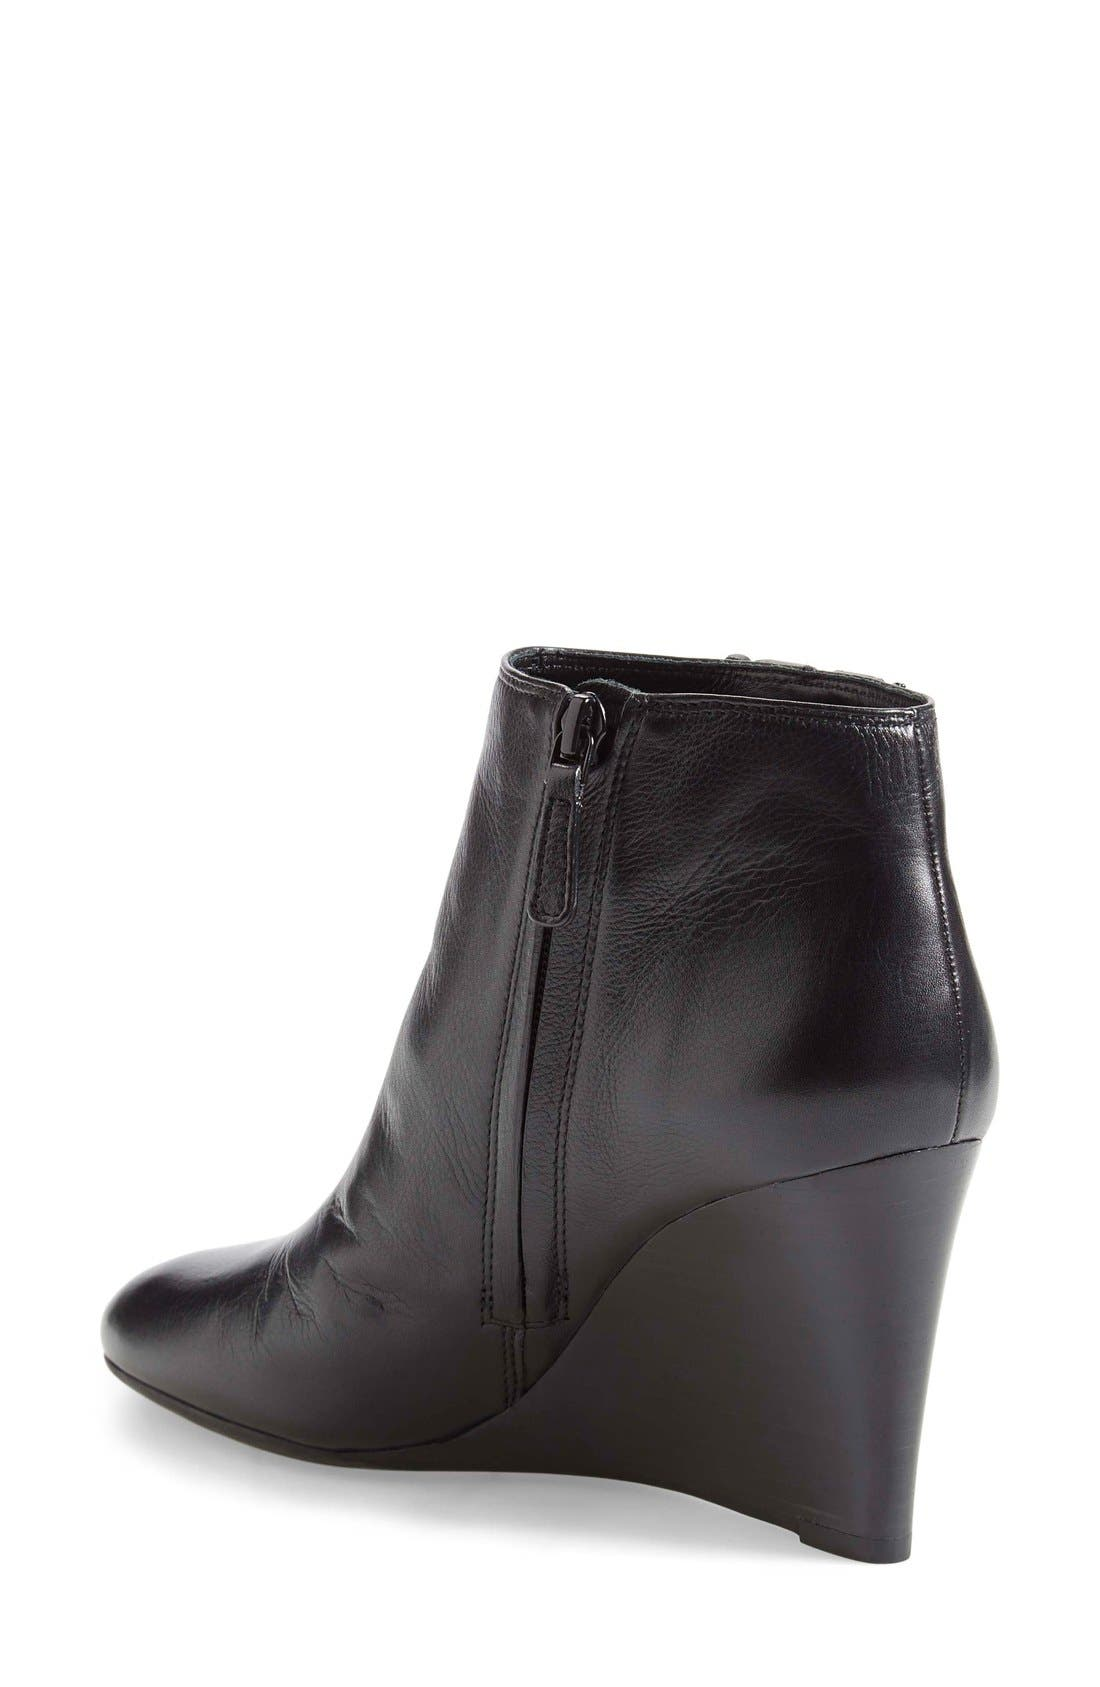 'Lowell' Wedge Bootie,                             Alternate thumbnail 2, color,                             001